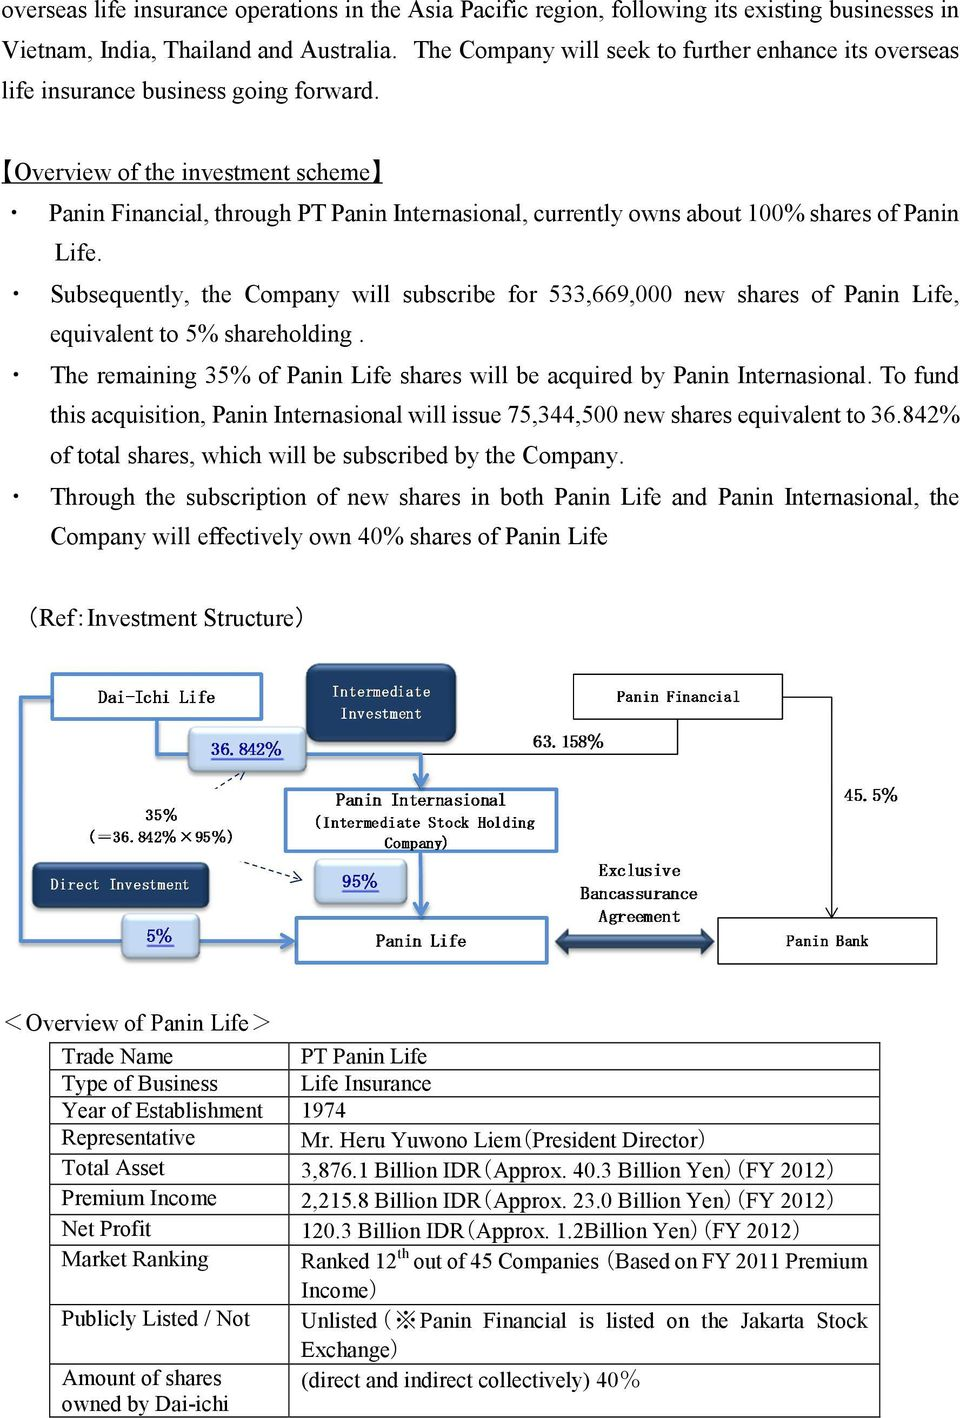 Overview of the investment scheme Panin Financial, through PT Panin Internasional, currently owns about 100% shares of Panin Life.